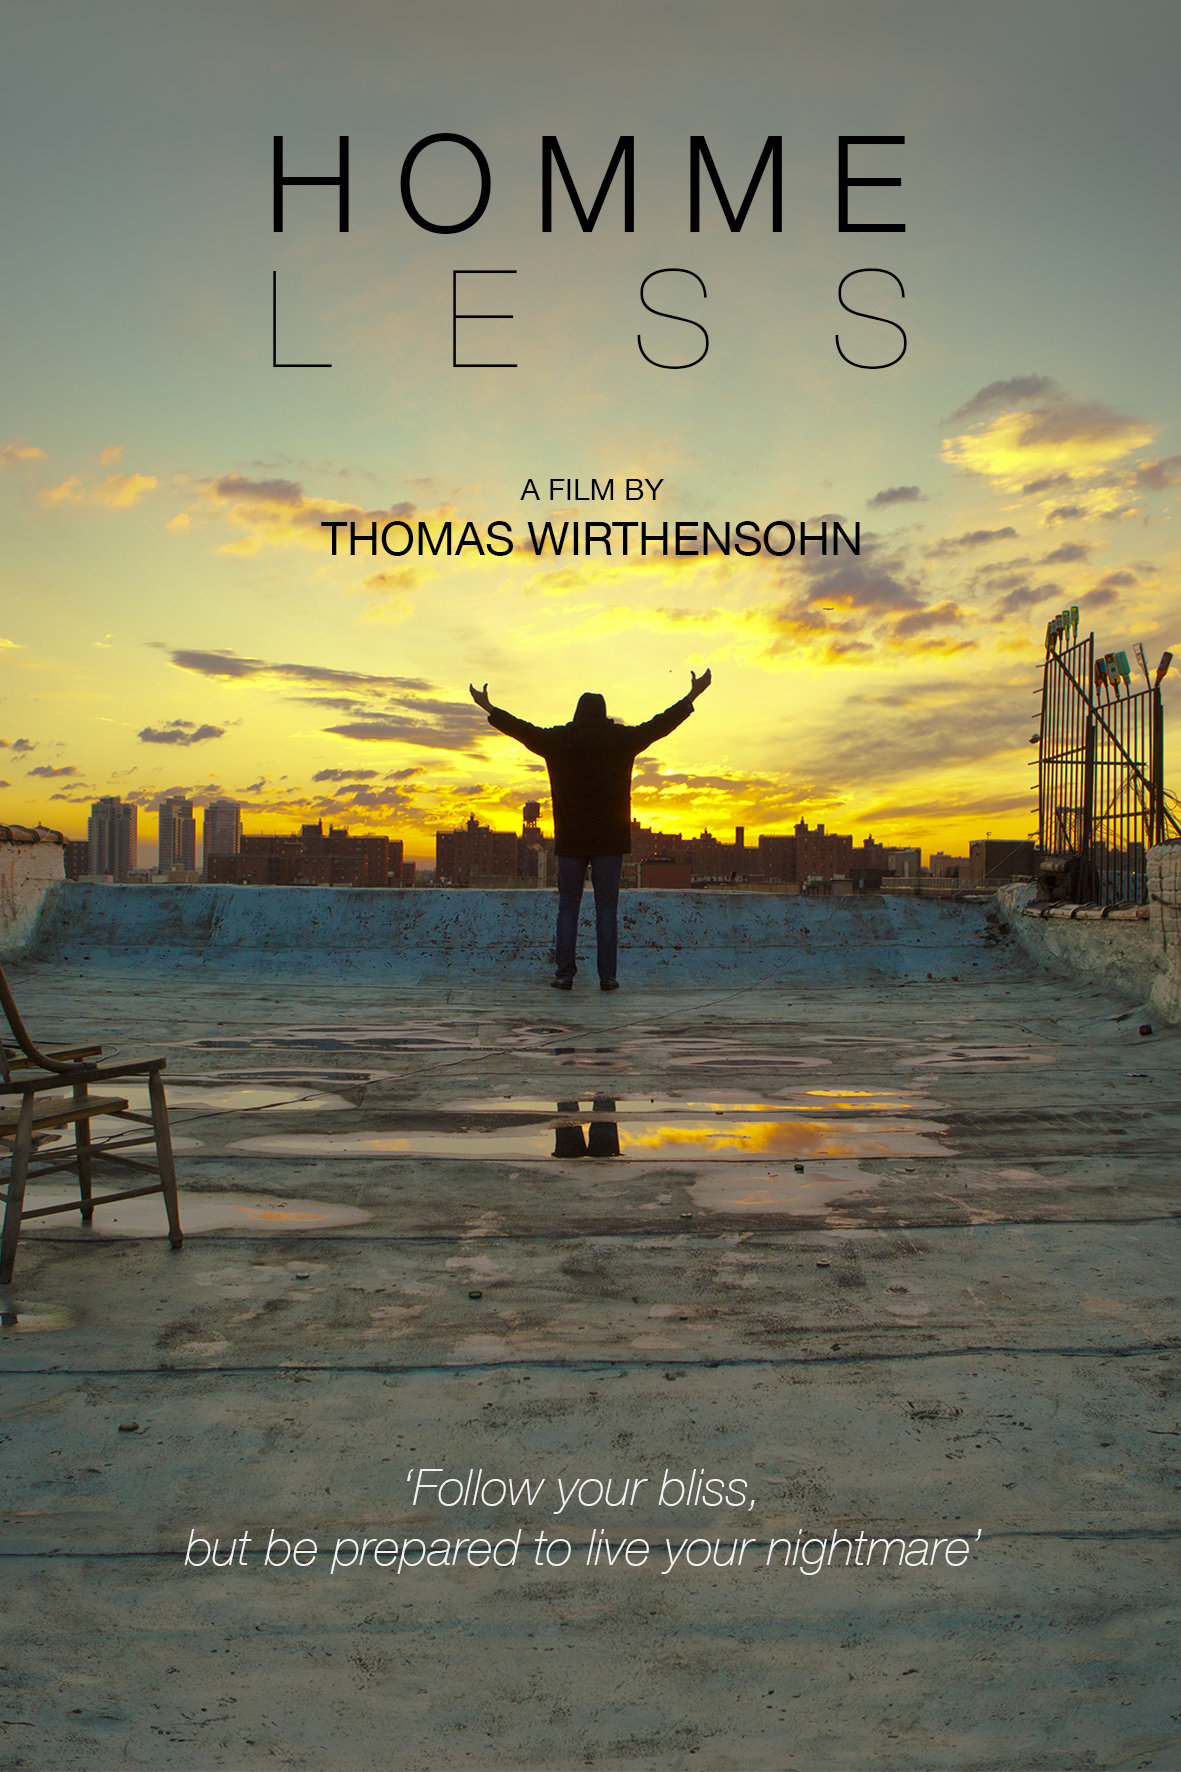 image Homme Less Watch Full Movie Free Online